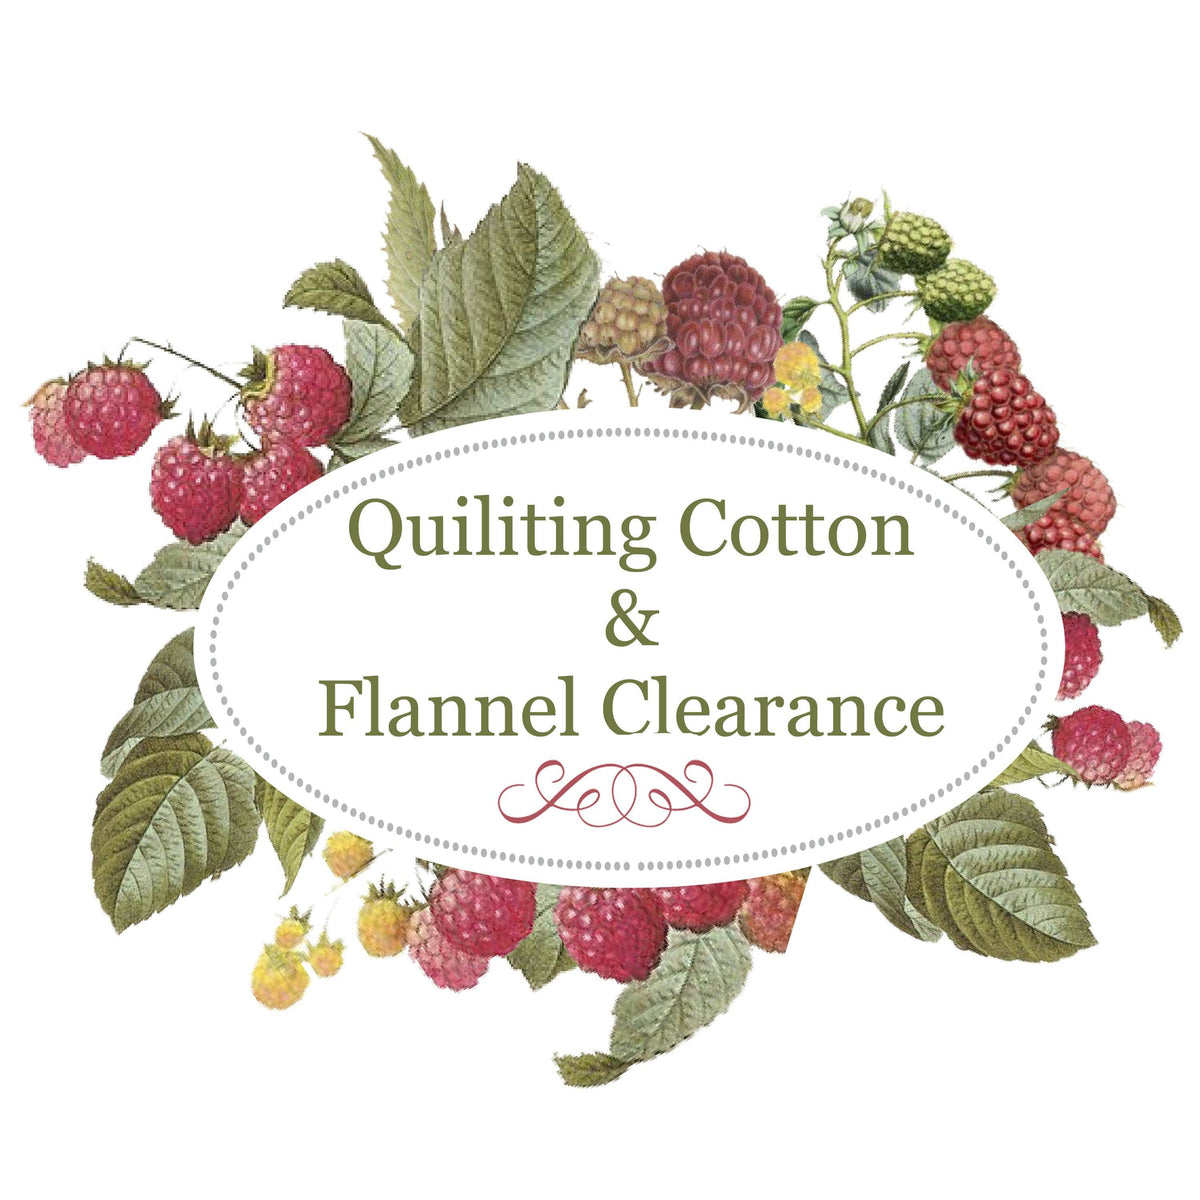 Woven Cotton Flannel Clearance